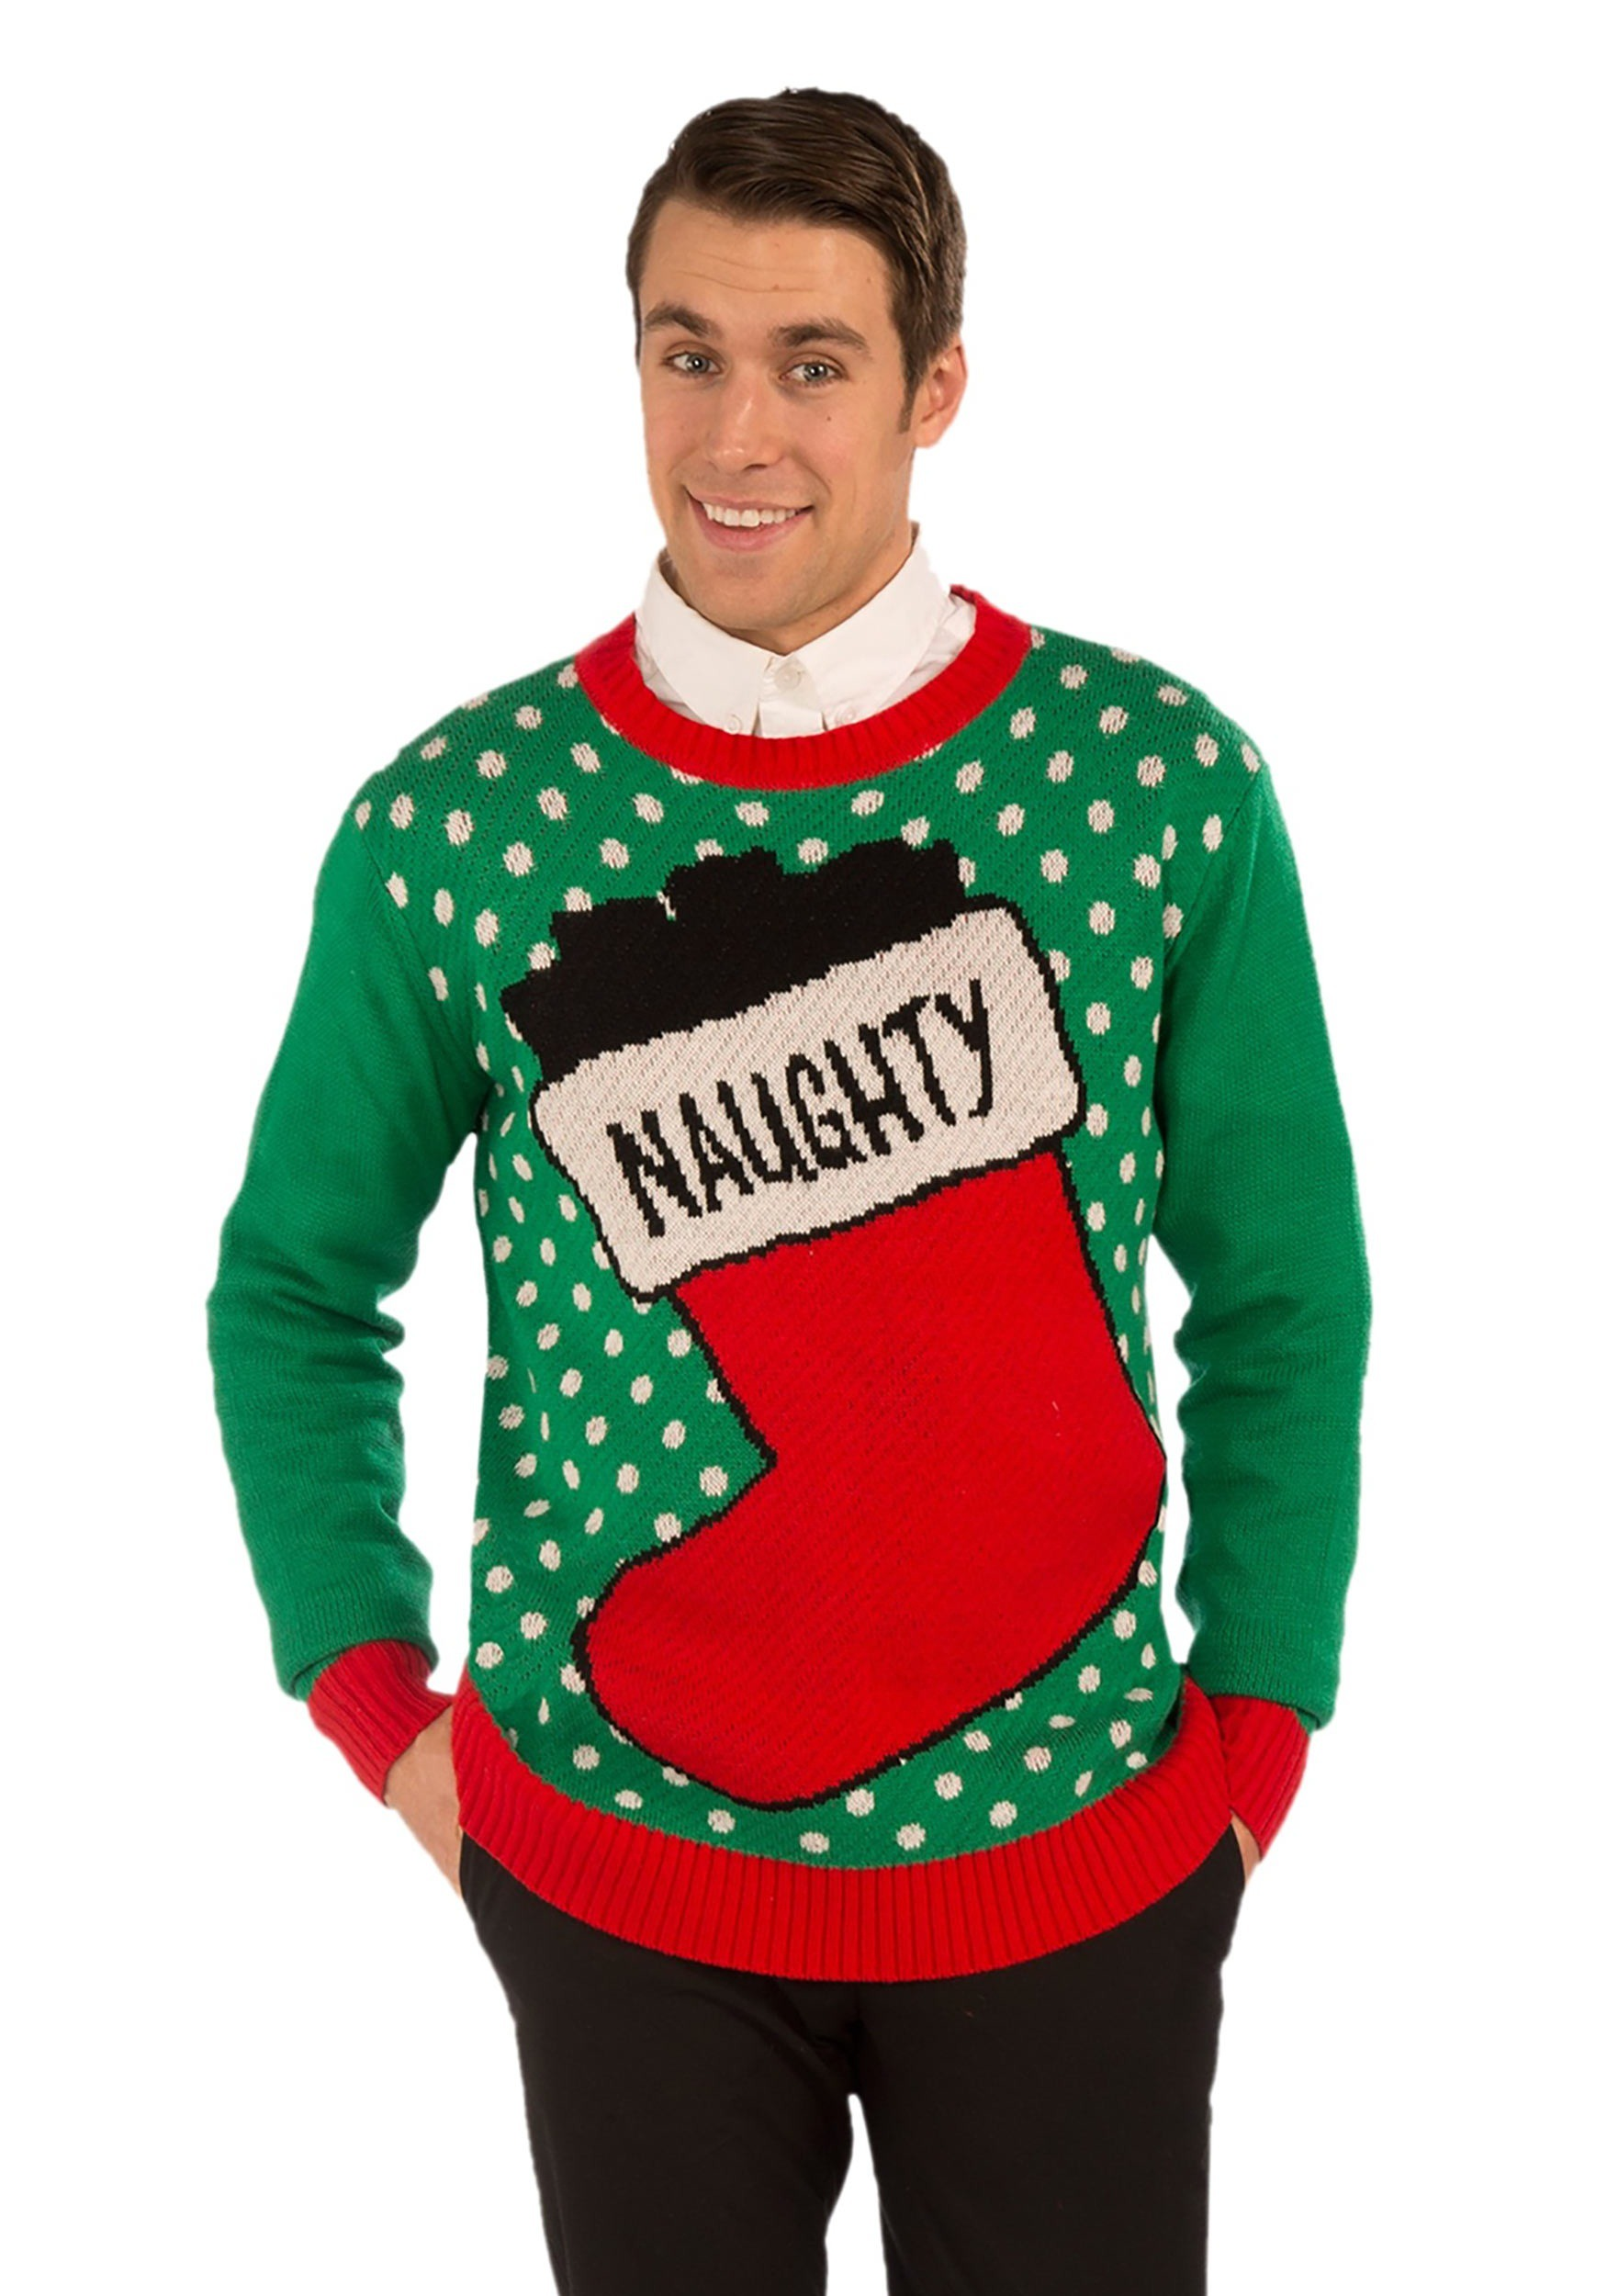 Bad christmas sweaters for sale